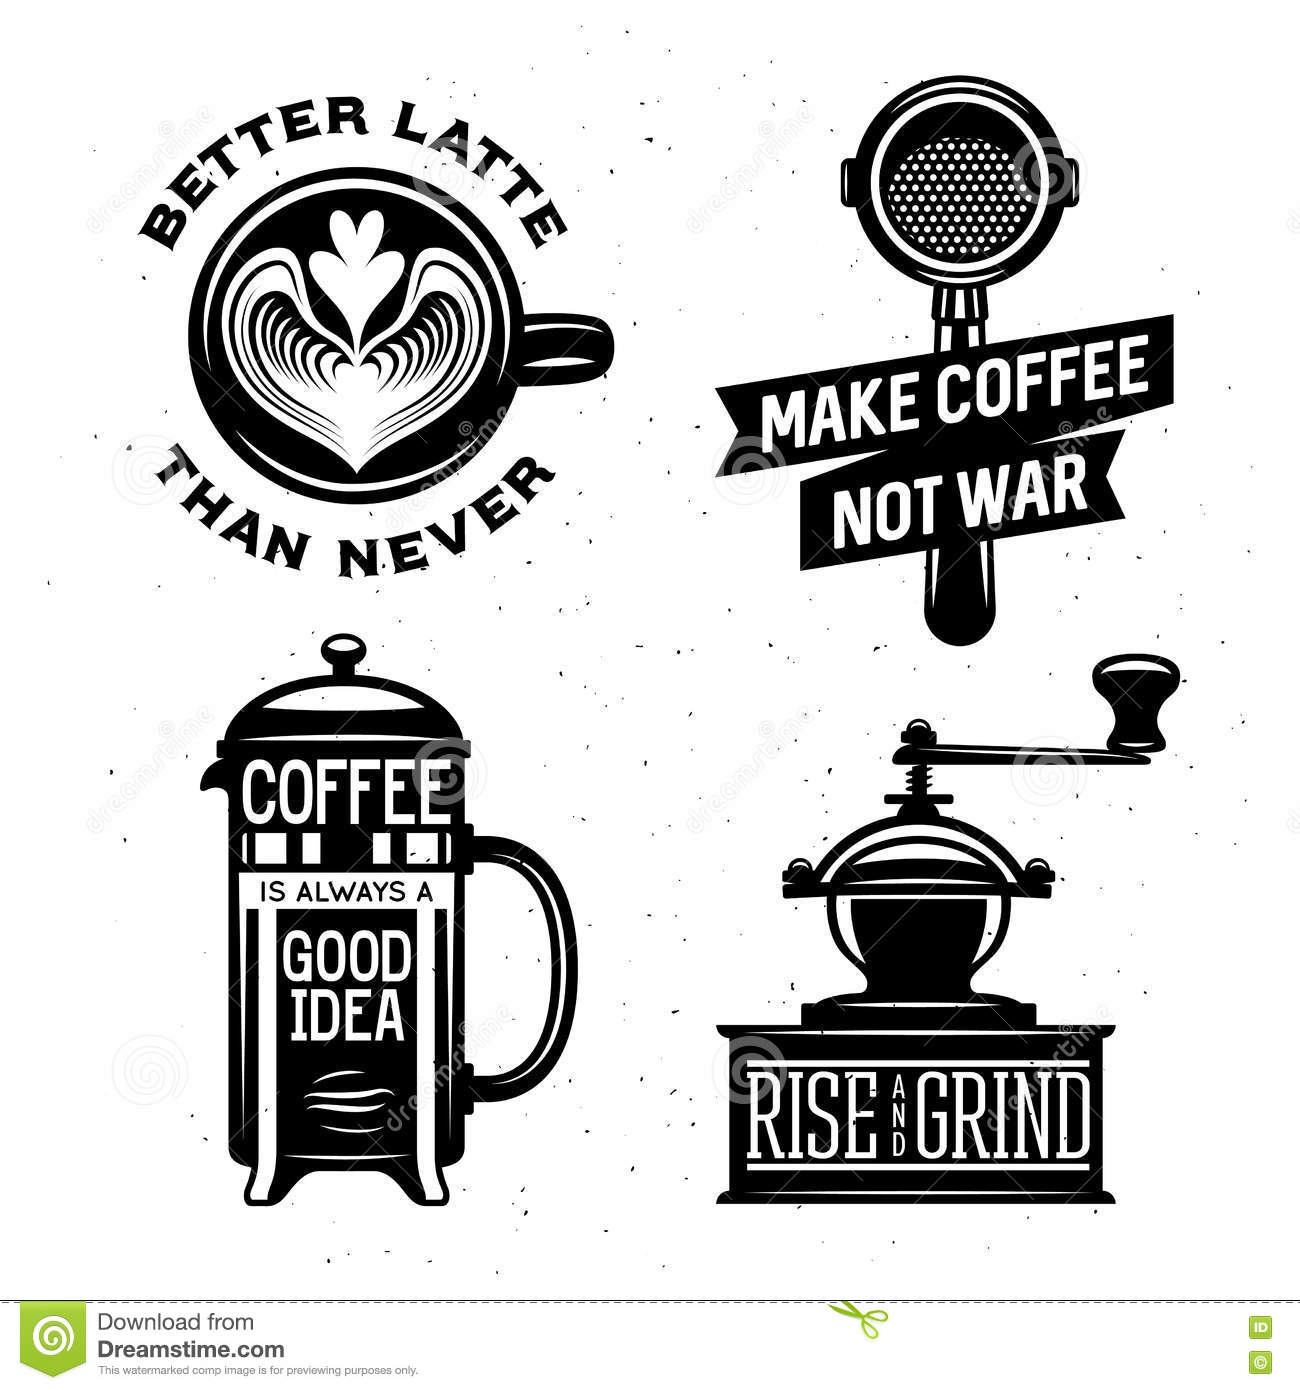 Coffee Latte Art Quotes Coffee Related Vintage Vector Illustration With Quotes